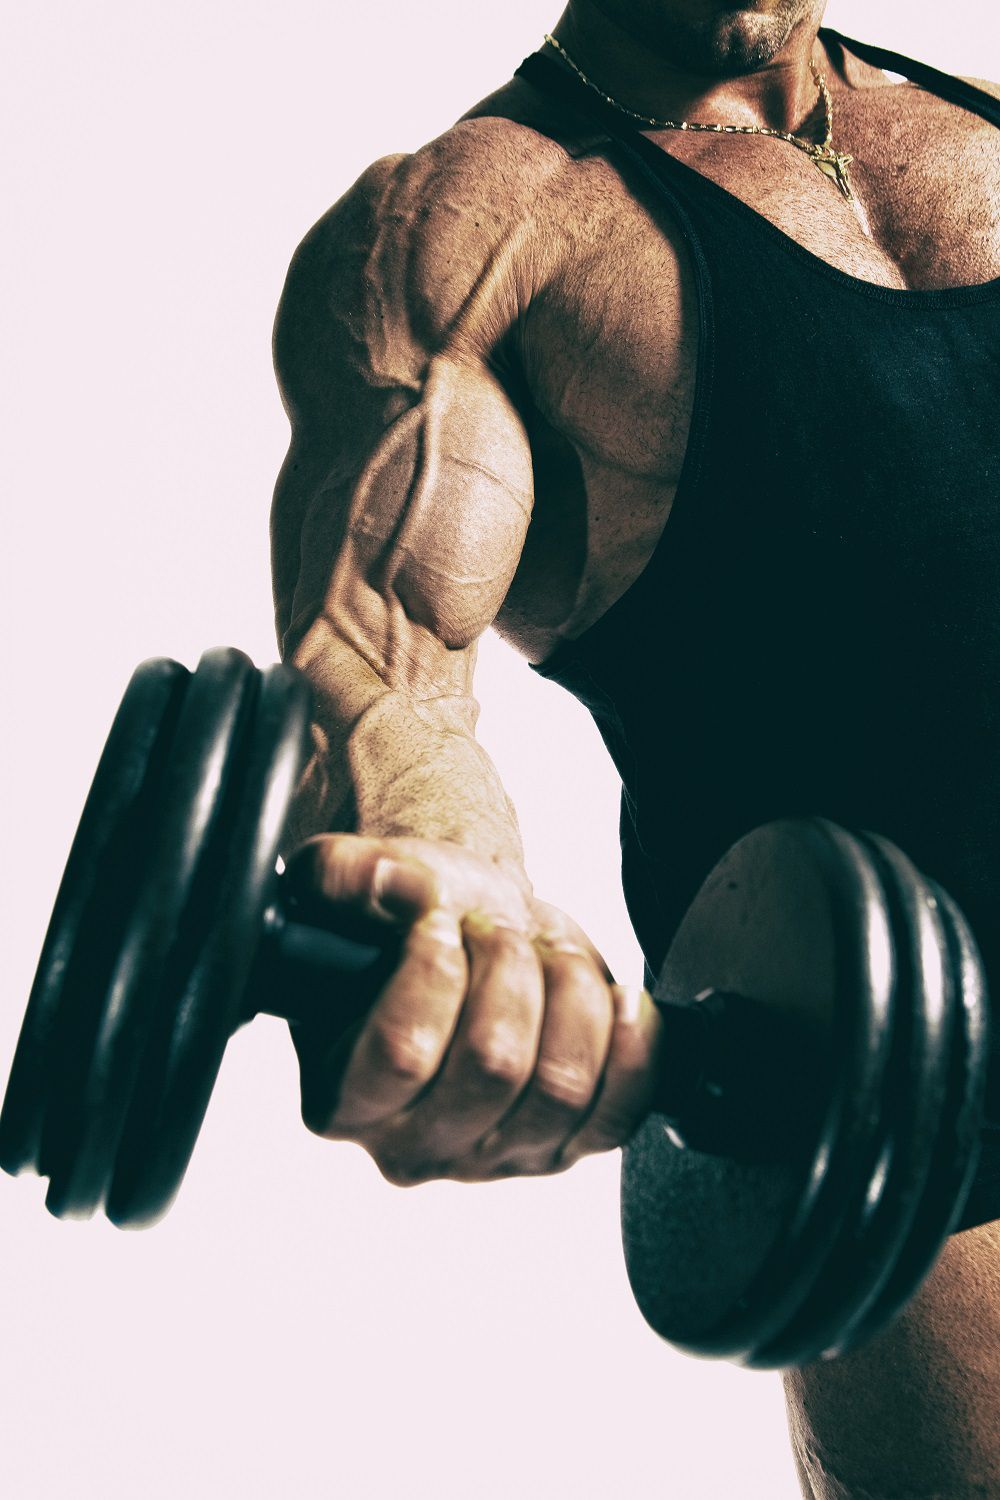 real steroids online